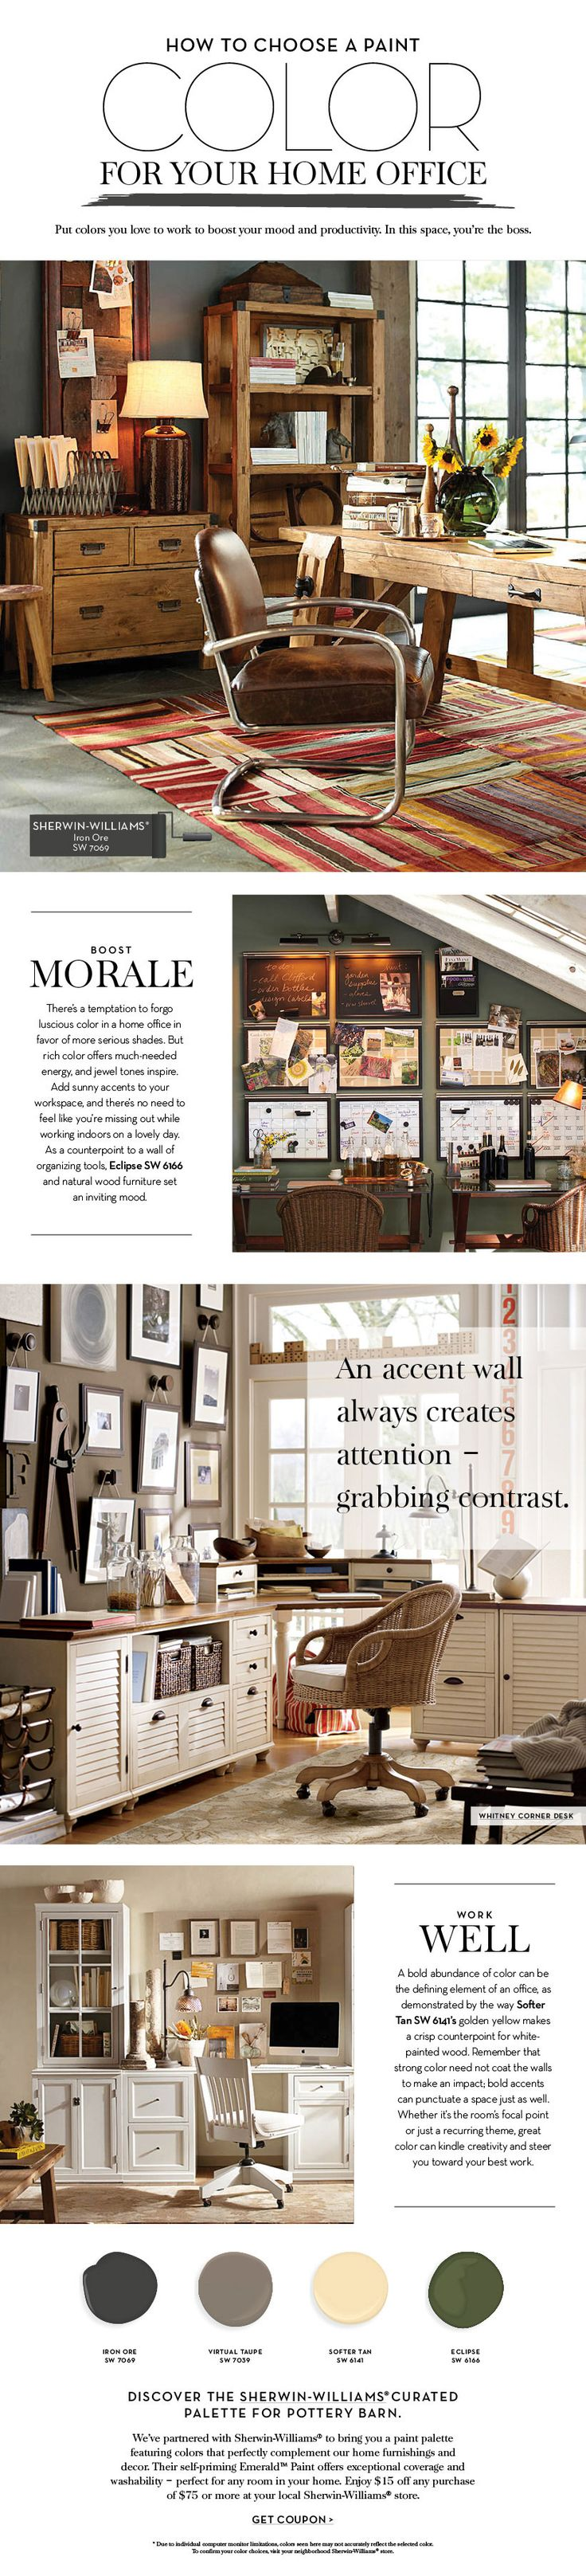 Choose a Paint Color For Your Home Office   Pottery Barn